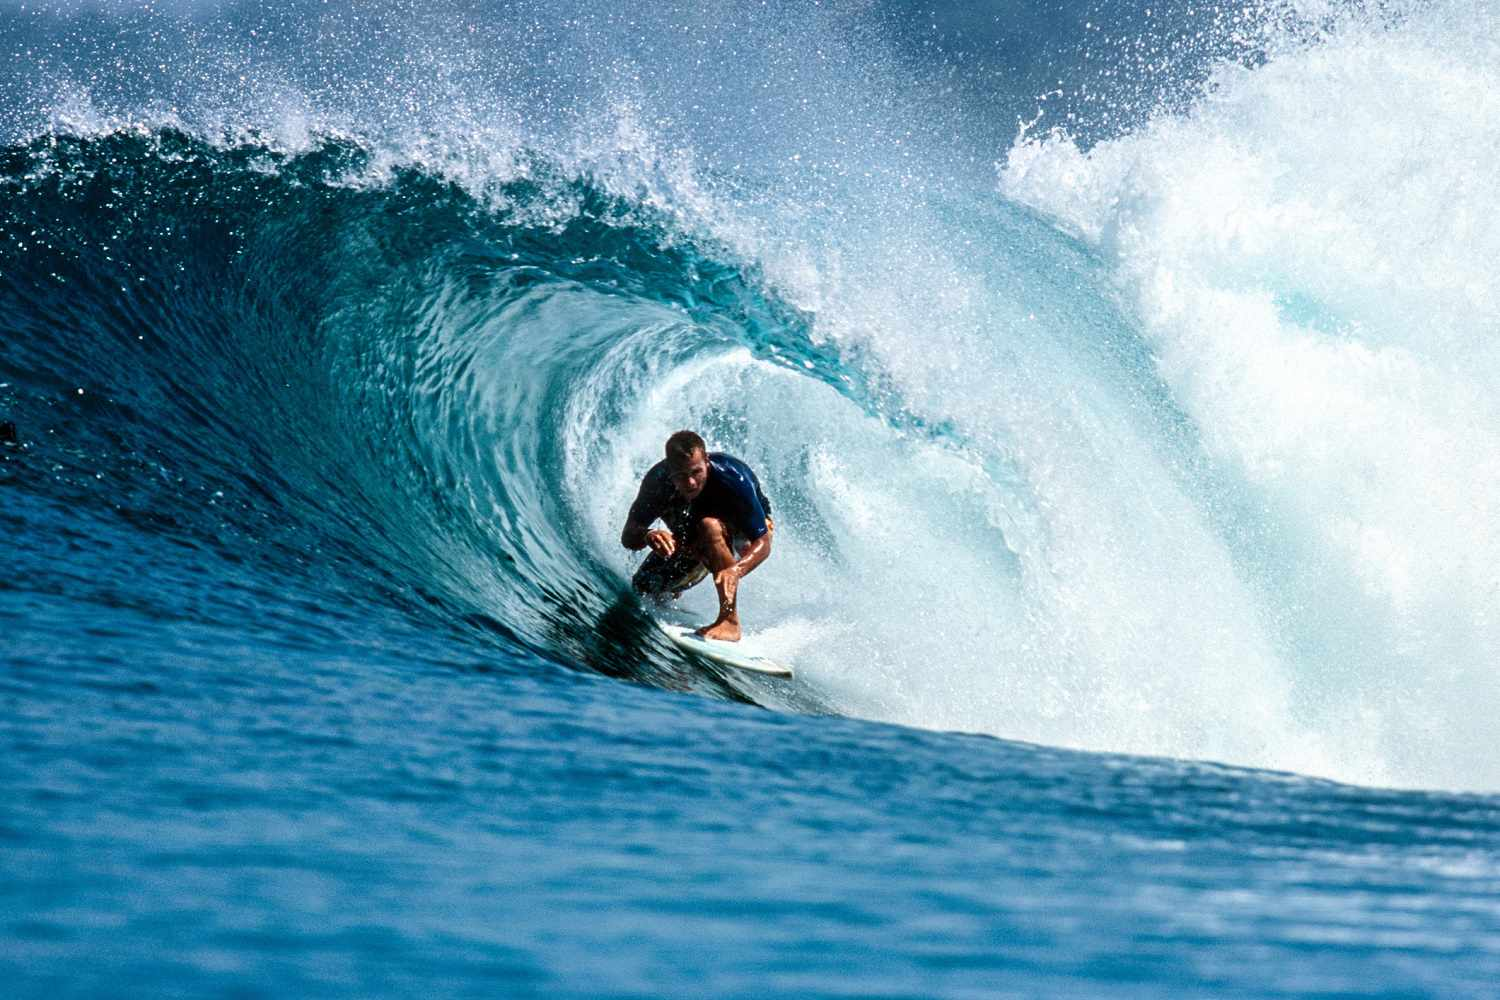 Surfing off Gili Air, Indonesia